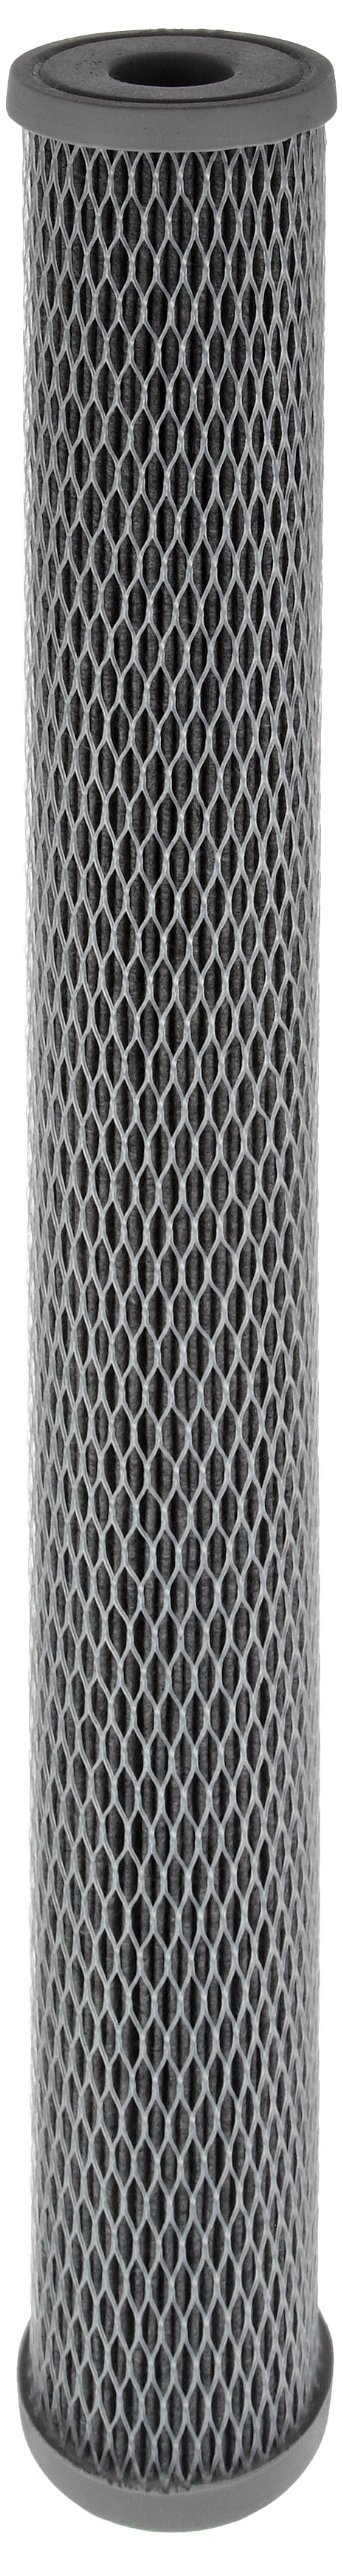 Pentek NCP-20 Pleated Carbon-Impregnated Polyester Filter Cartridge, 20'' x 2-1/2'', 10 Microns